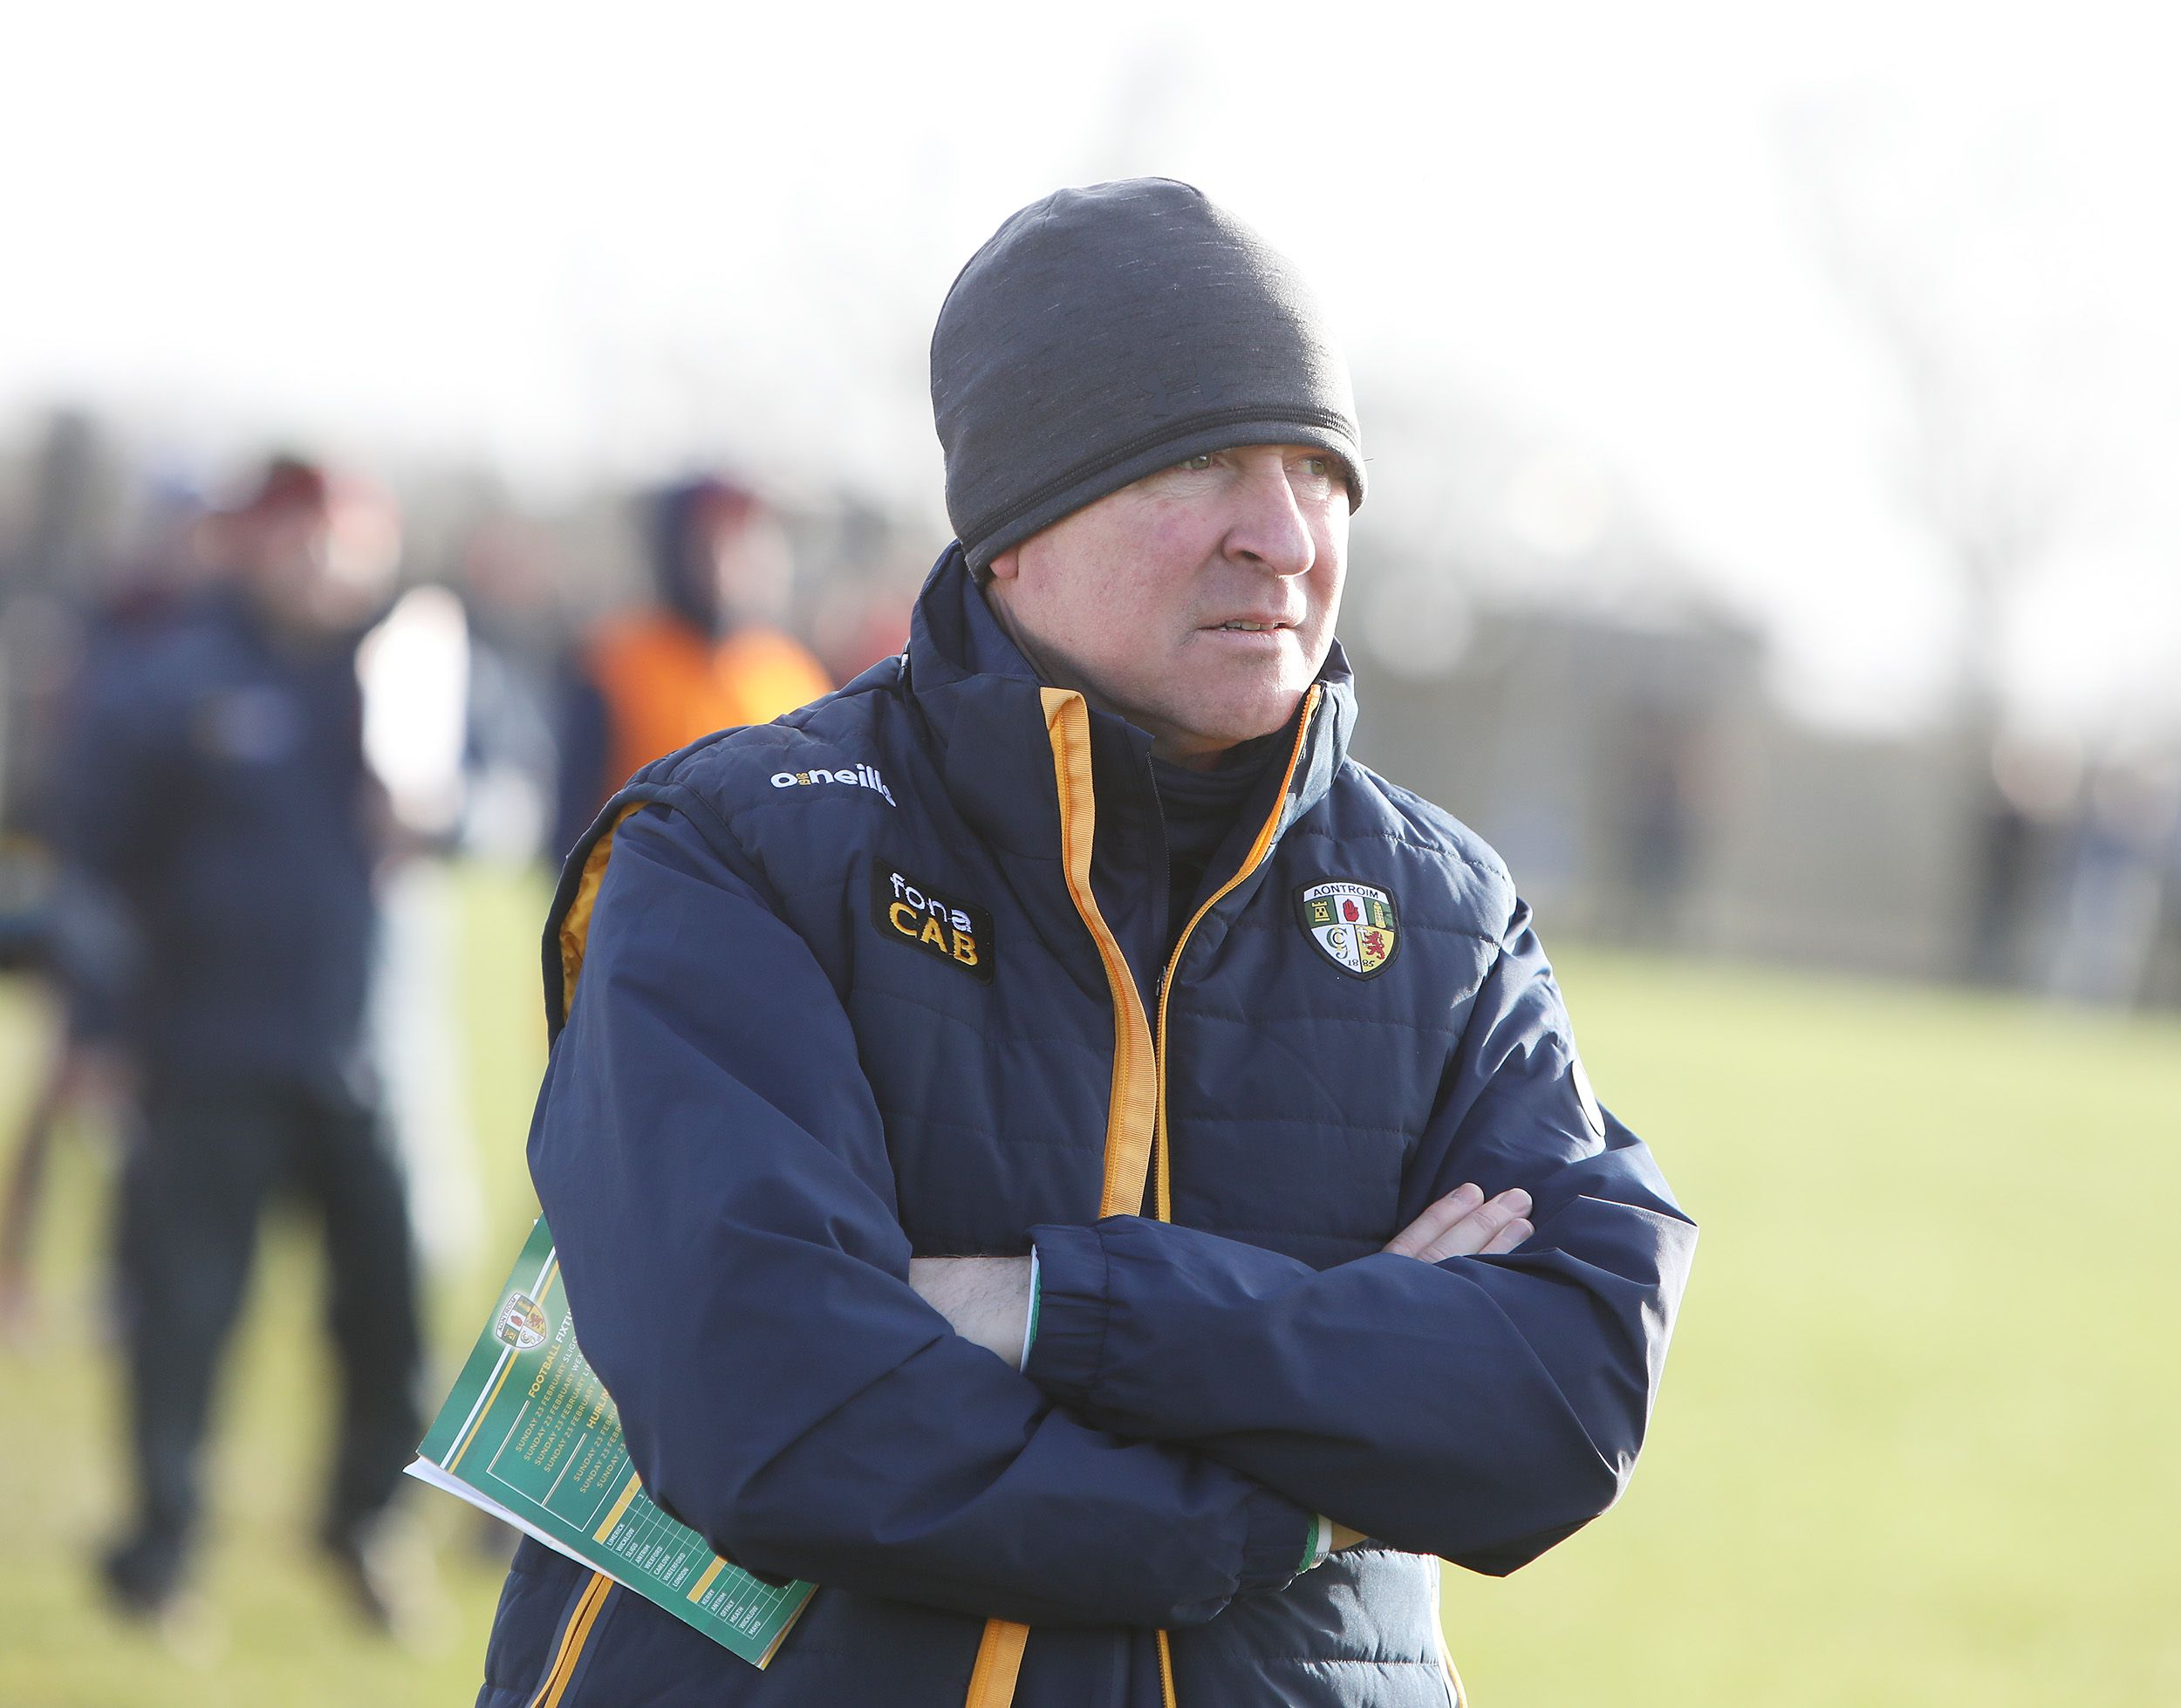 Antrim football manager Lenny Harbinson says the return of Kevin O'Boyle, Mark Sweeney, Ryan Murray and Paddy McCormick will add extra experience ahead of next week's crunch trip to Wicklow in Division Four of the National League